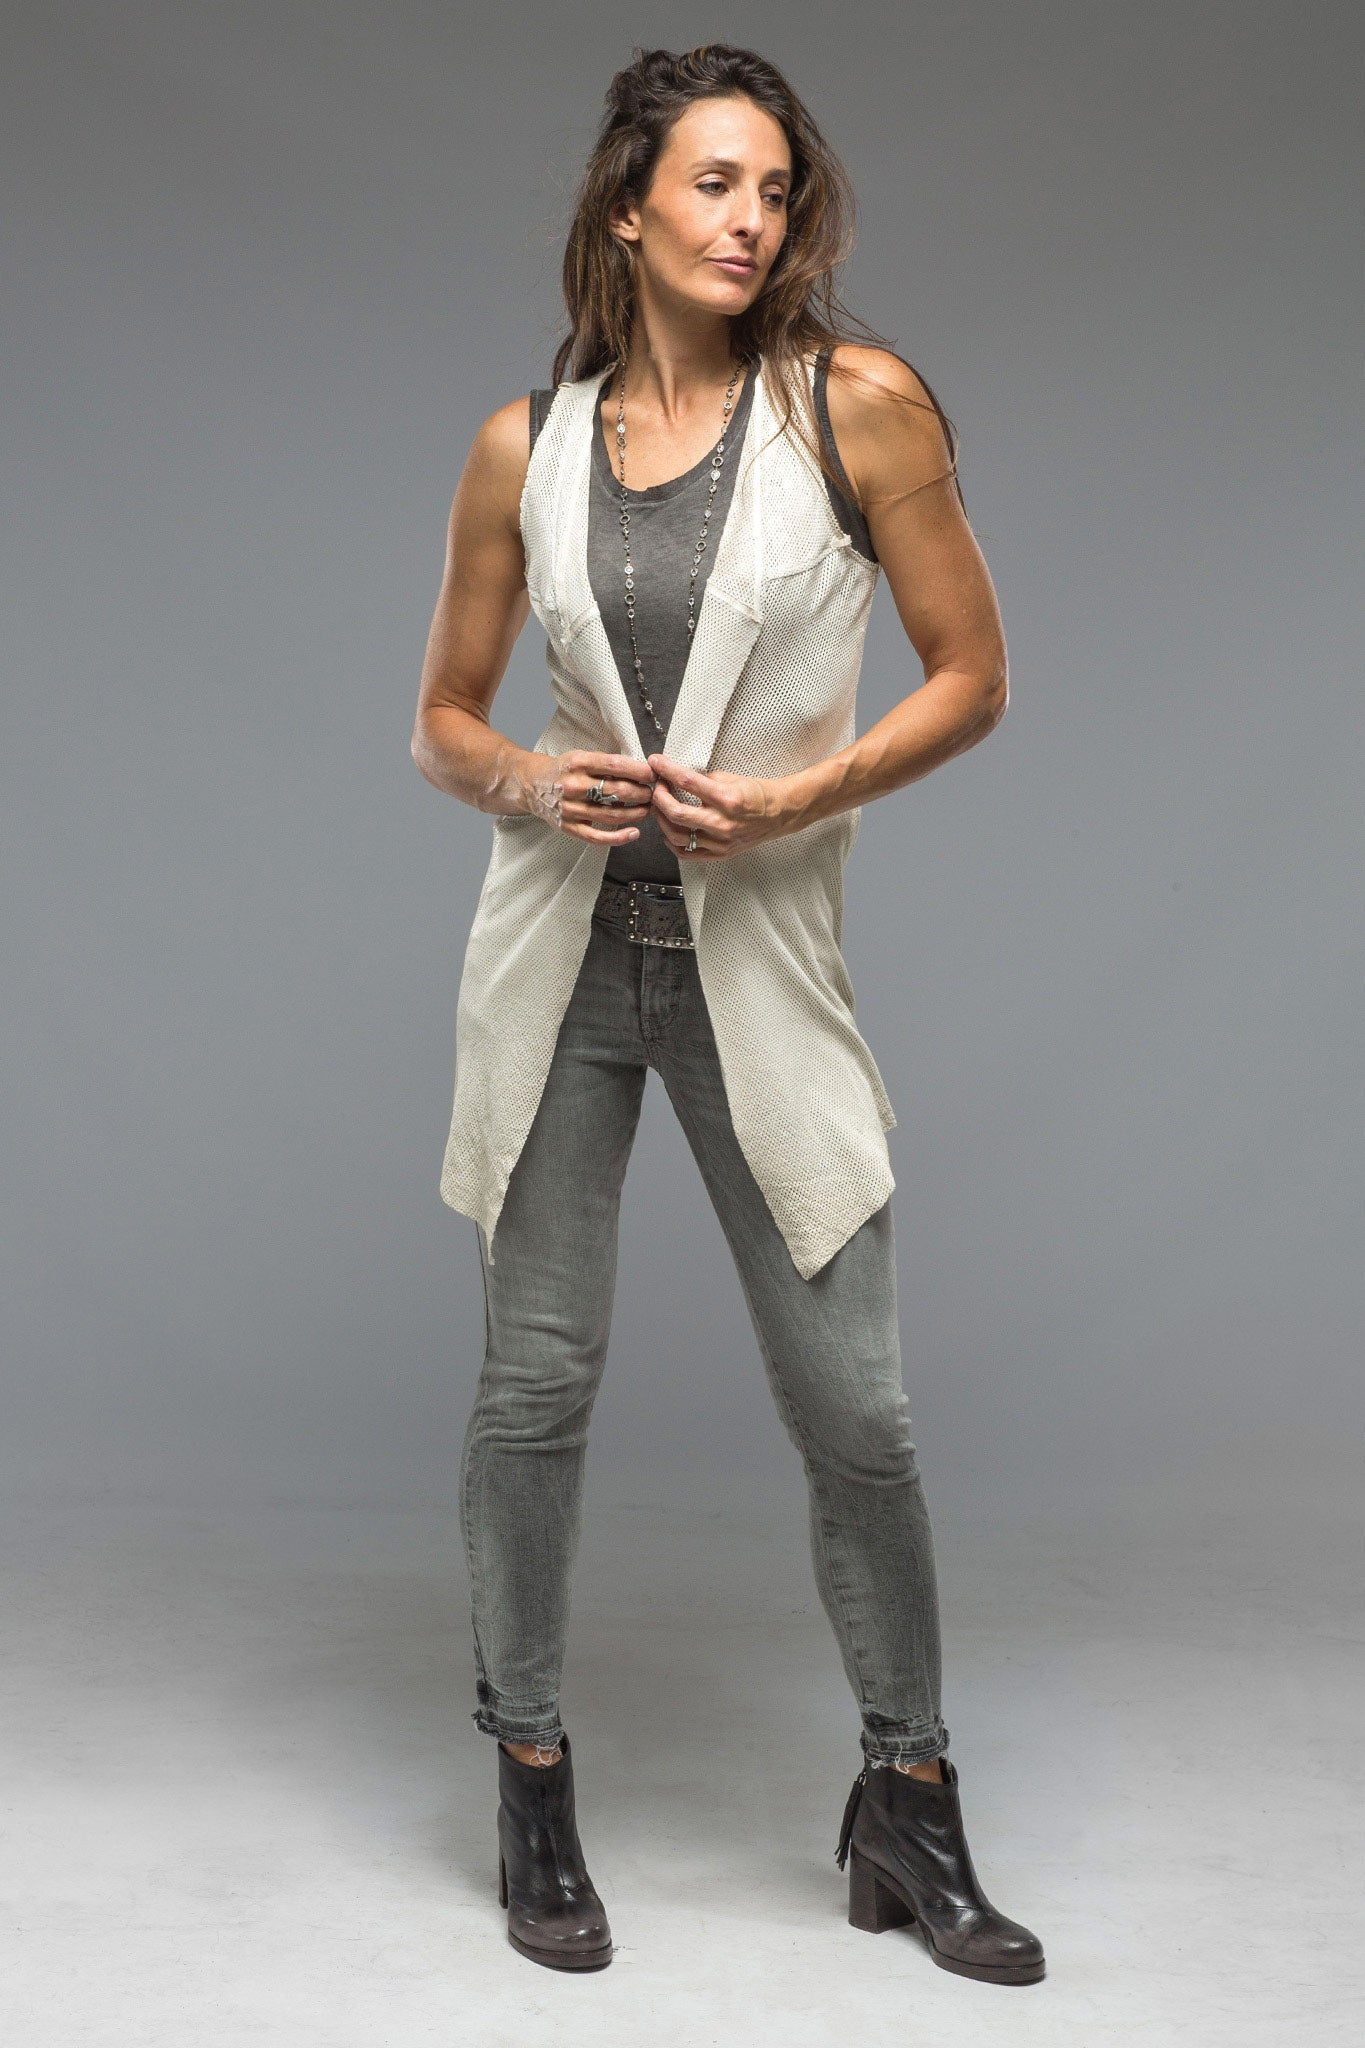 Dulce Long Vest in White